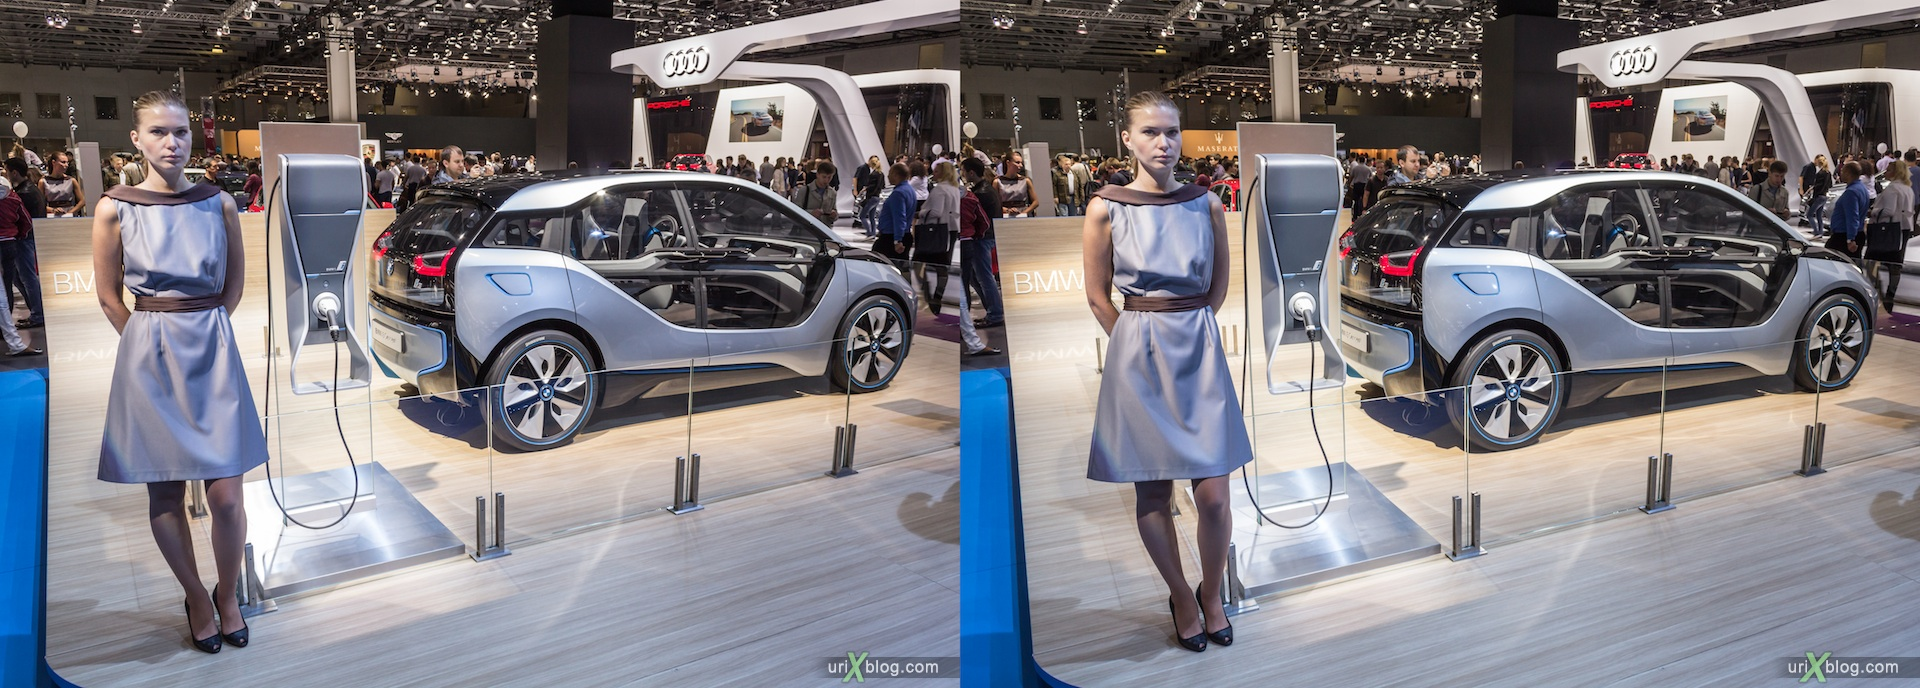 2012, BMW i3 Concept, девушка, модель, girl, model, Moscow International Automobile Salon, auto show, 3D, stereo pair, cross-eyed, crossview